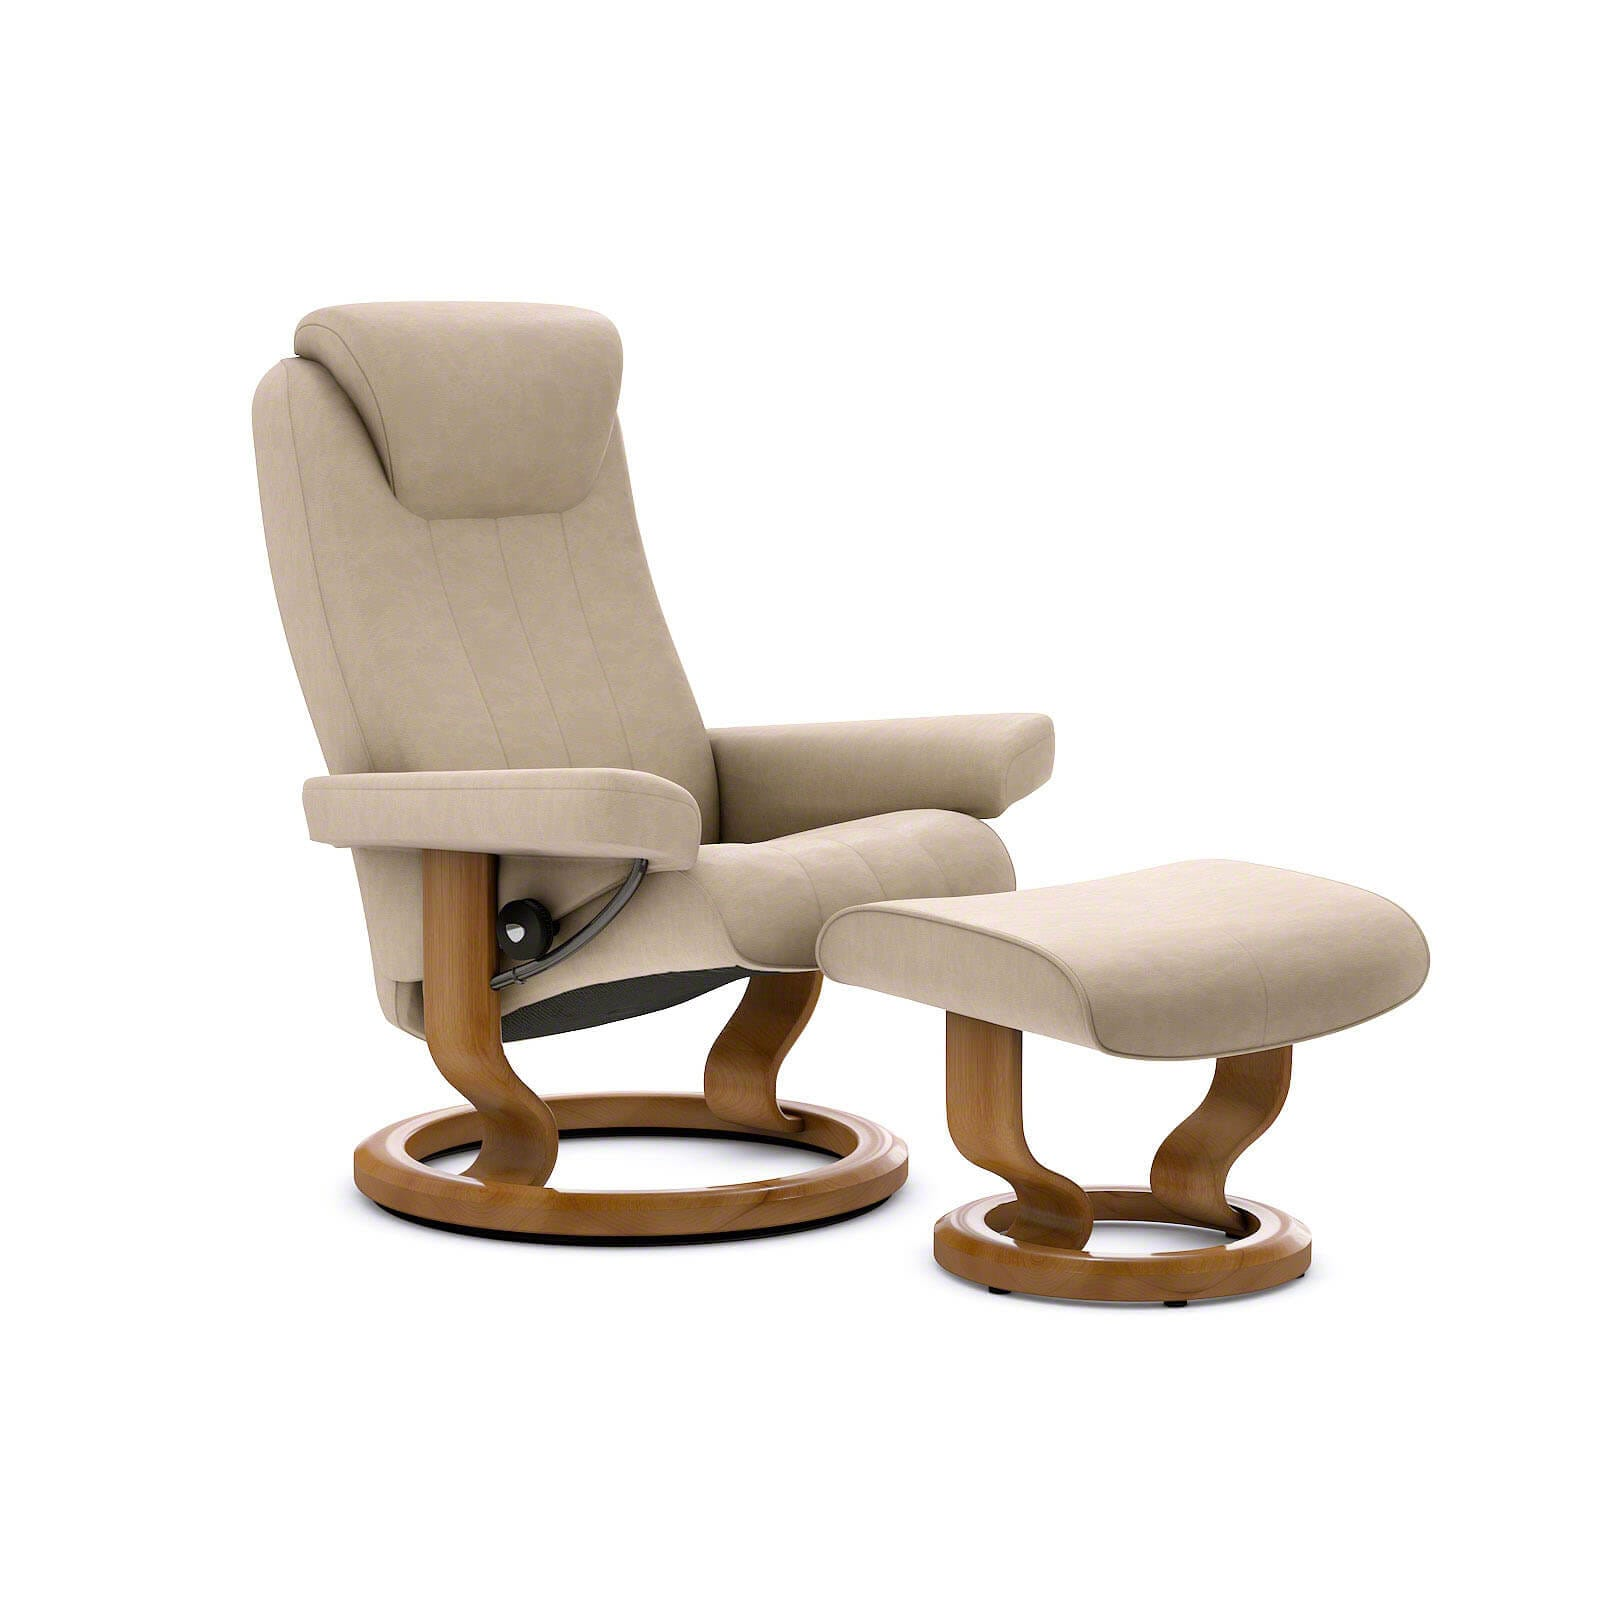 Stressless Sessel Bliss Stressless Bliss Sessel Beige Stressless Möbel Online Shop